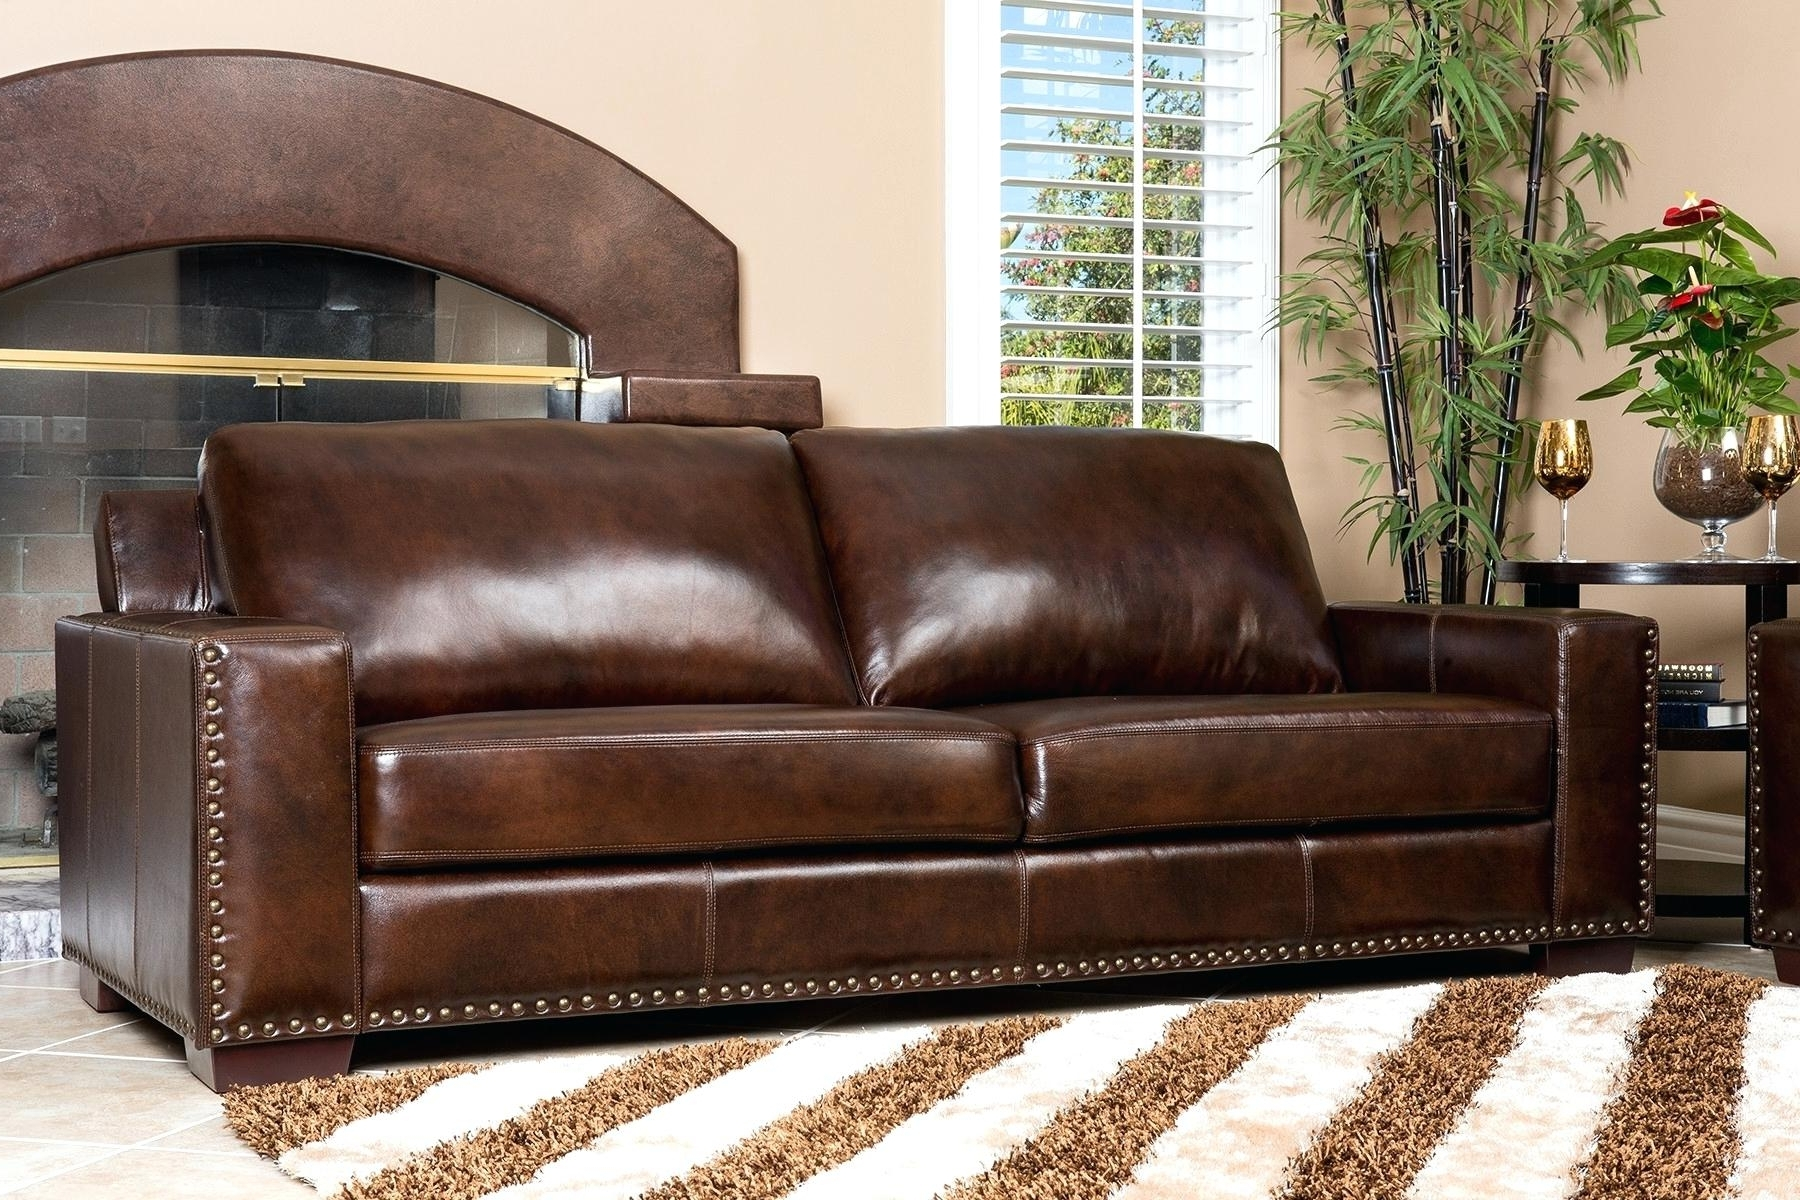 Newest Craigslist Leather Sofas In Restoration Hardware Leather Sofa Craigslist Chair Churchill (View 10 of 20)